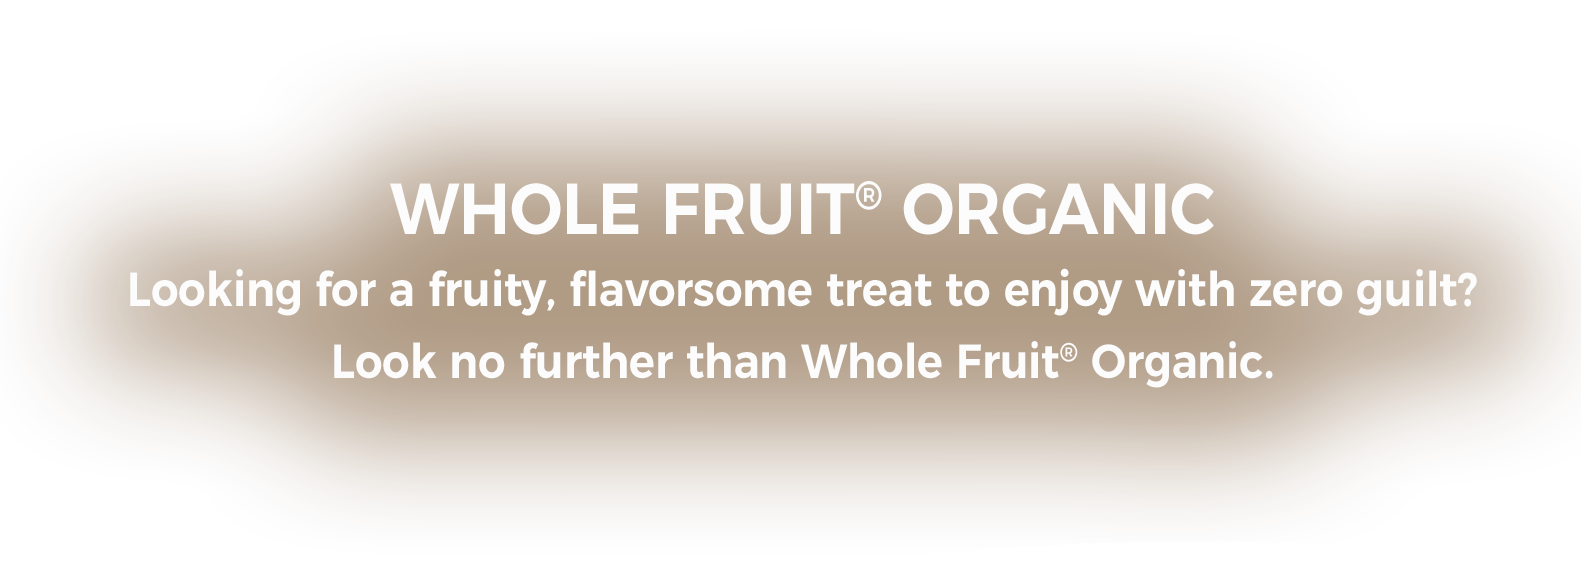 Whole Fruit Organic